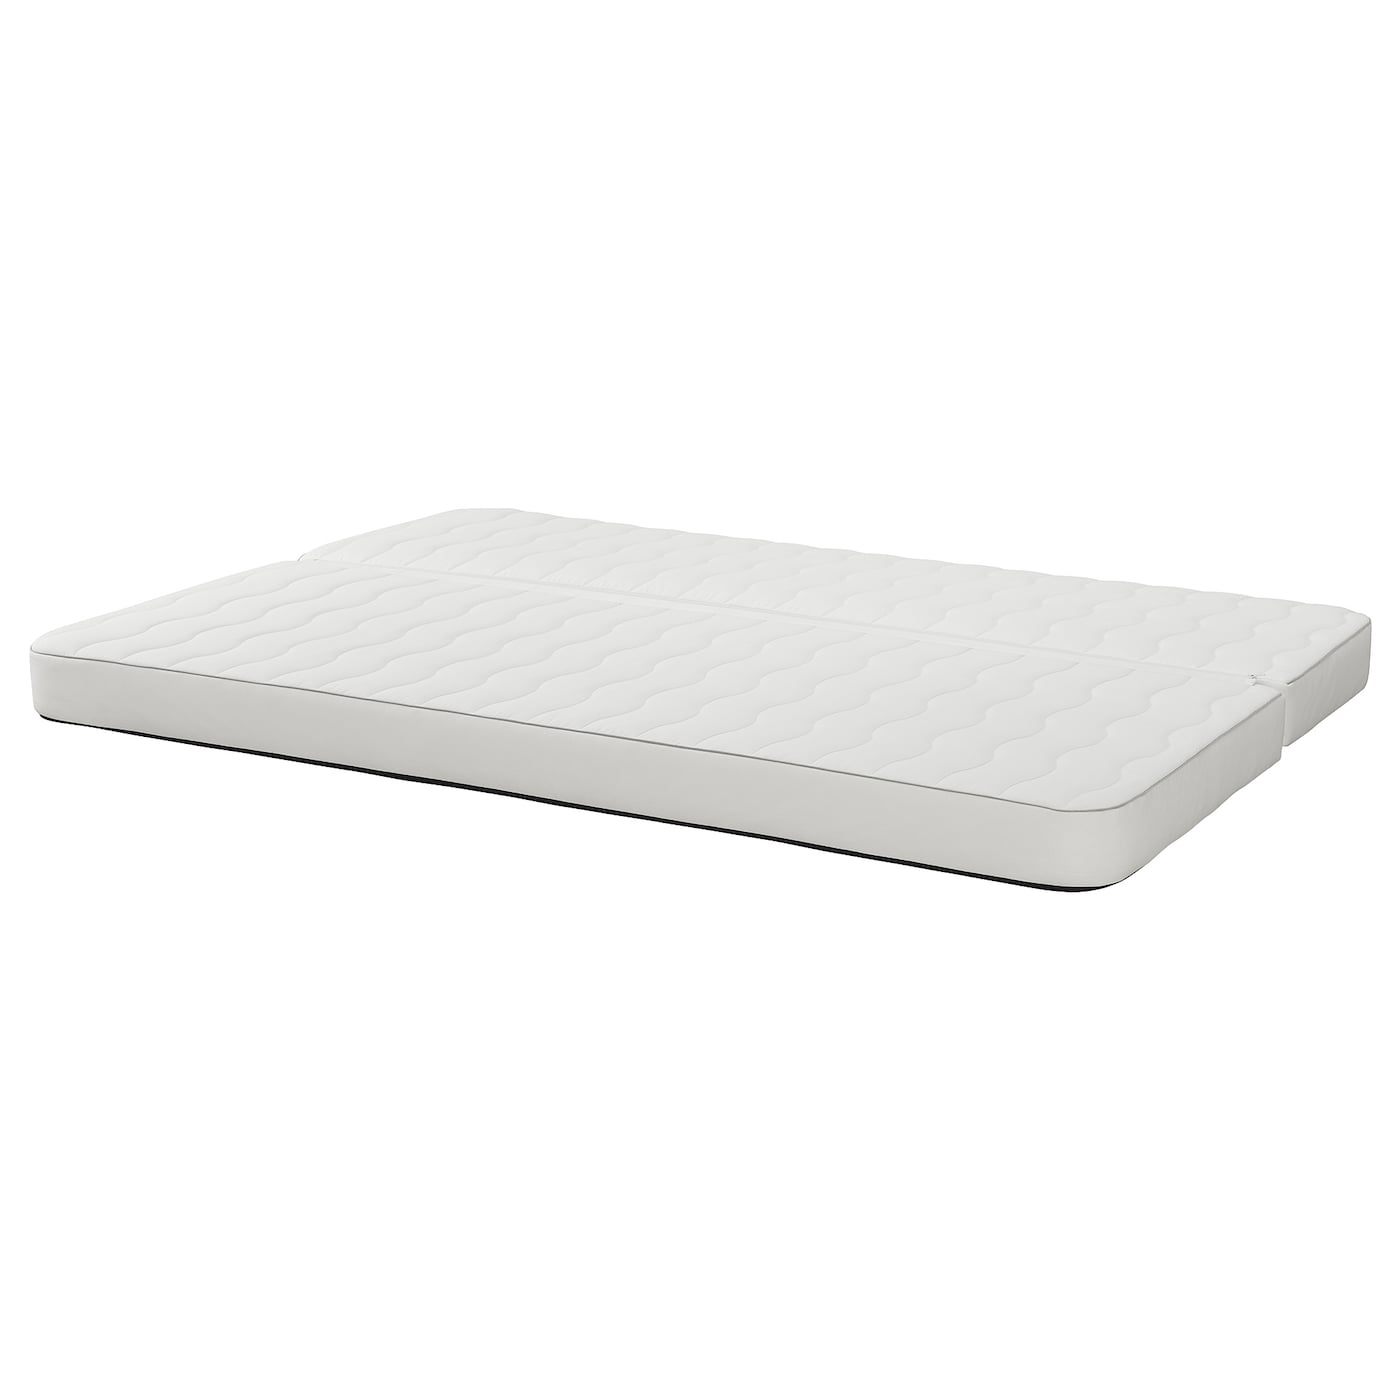 IKEA NYHAMN foam mattress Comfortable and firm foam mattress for use every night.